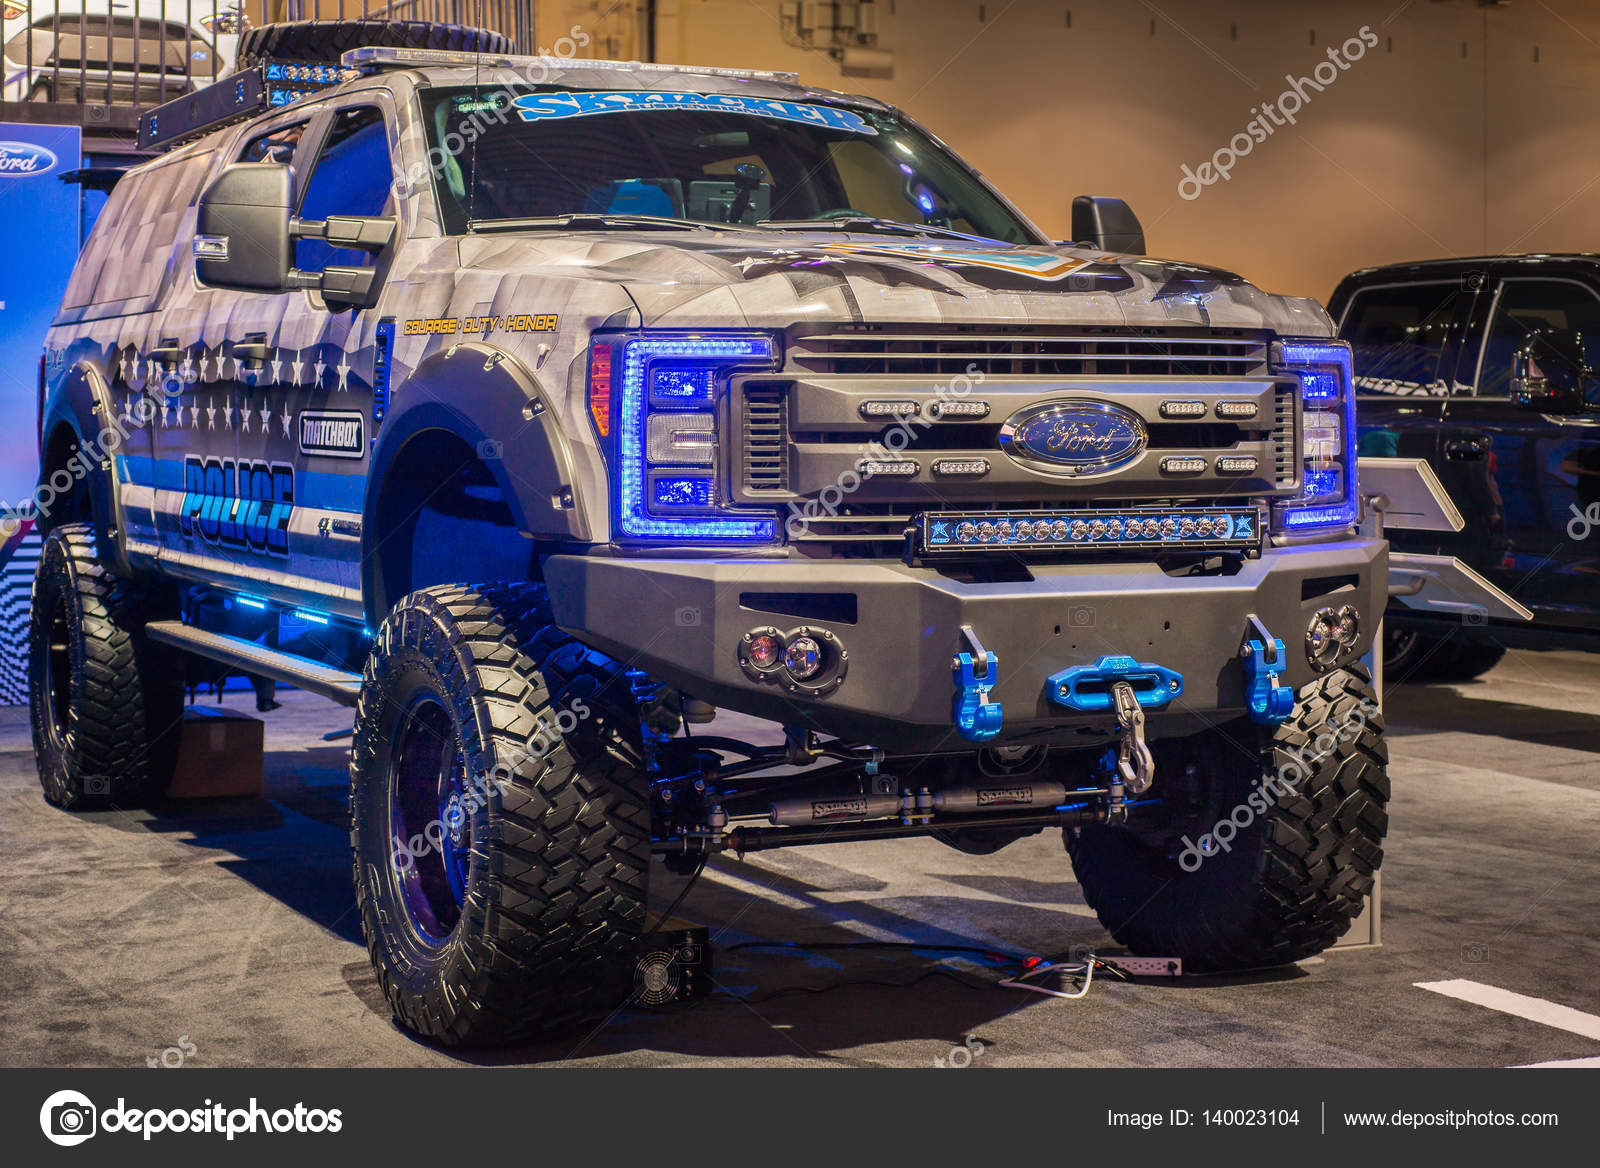 Matchbox Police Themed Truck 2017 Ford F 350 Super Duty